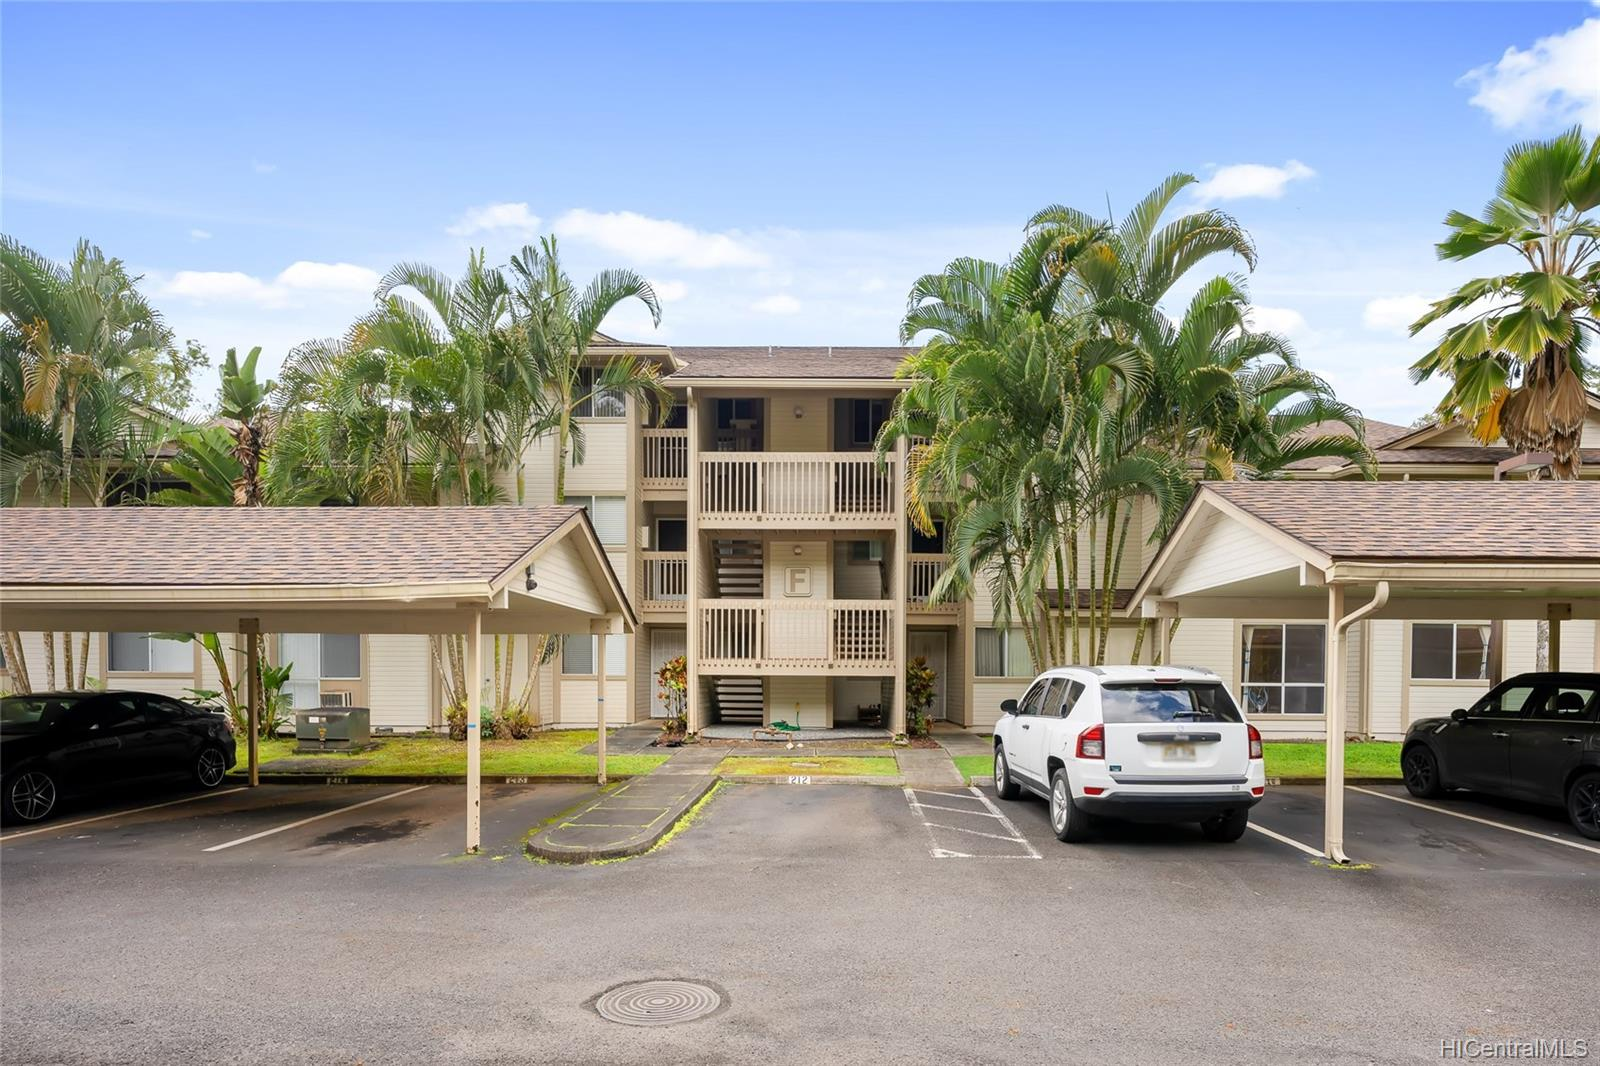 95-510 Wikao Street townhouse # F304, Mililani, Hawaii - photo 13 of 16